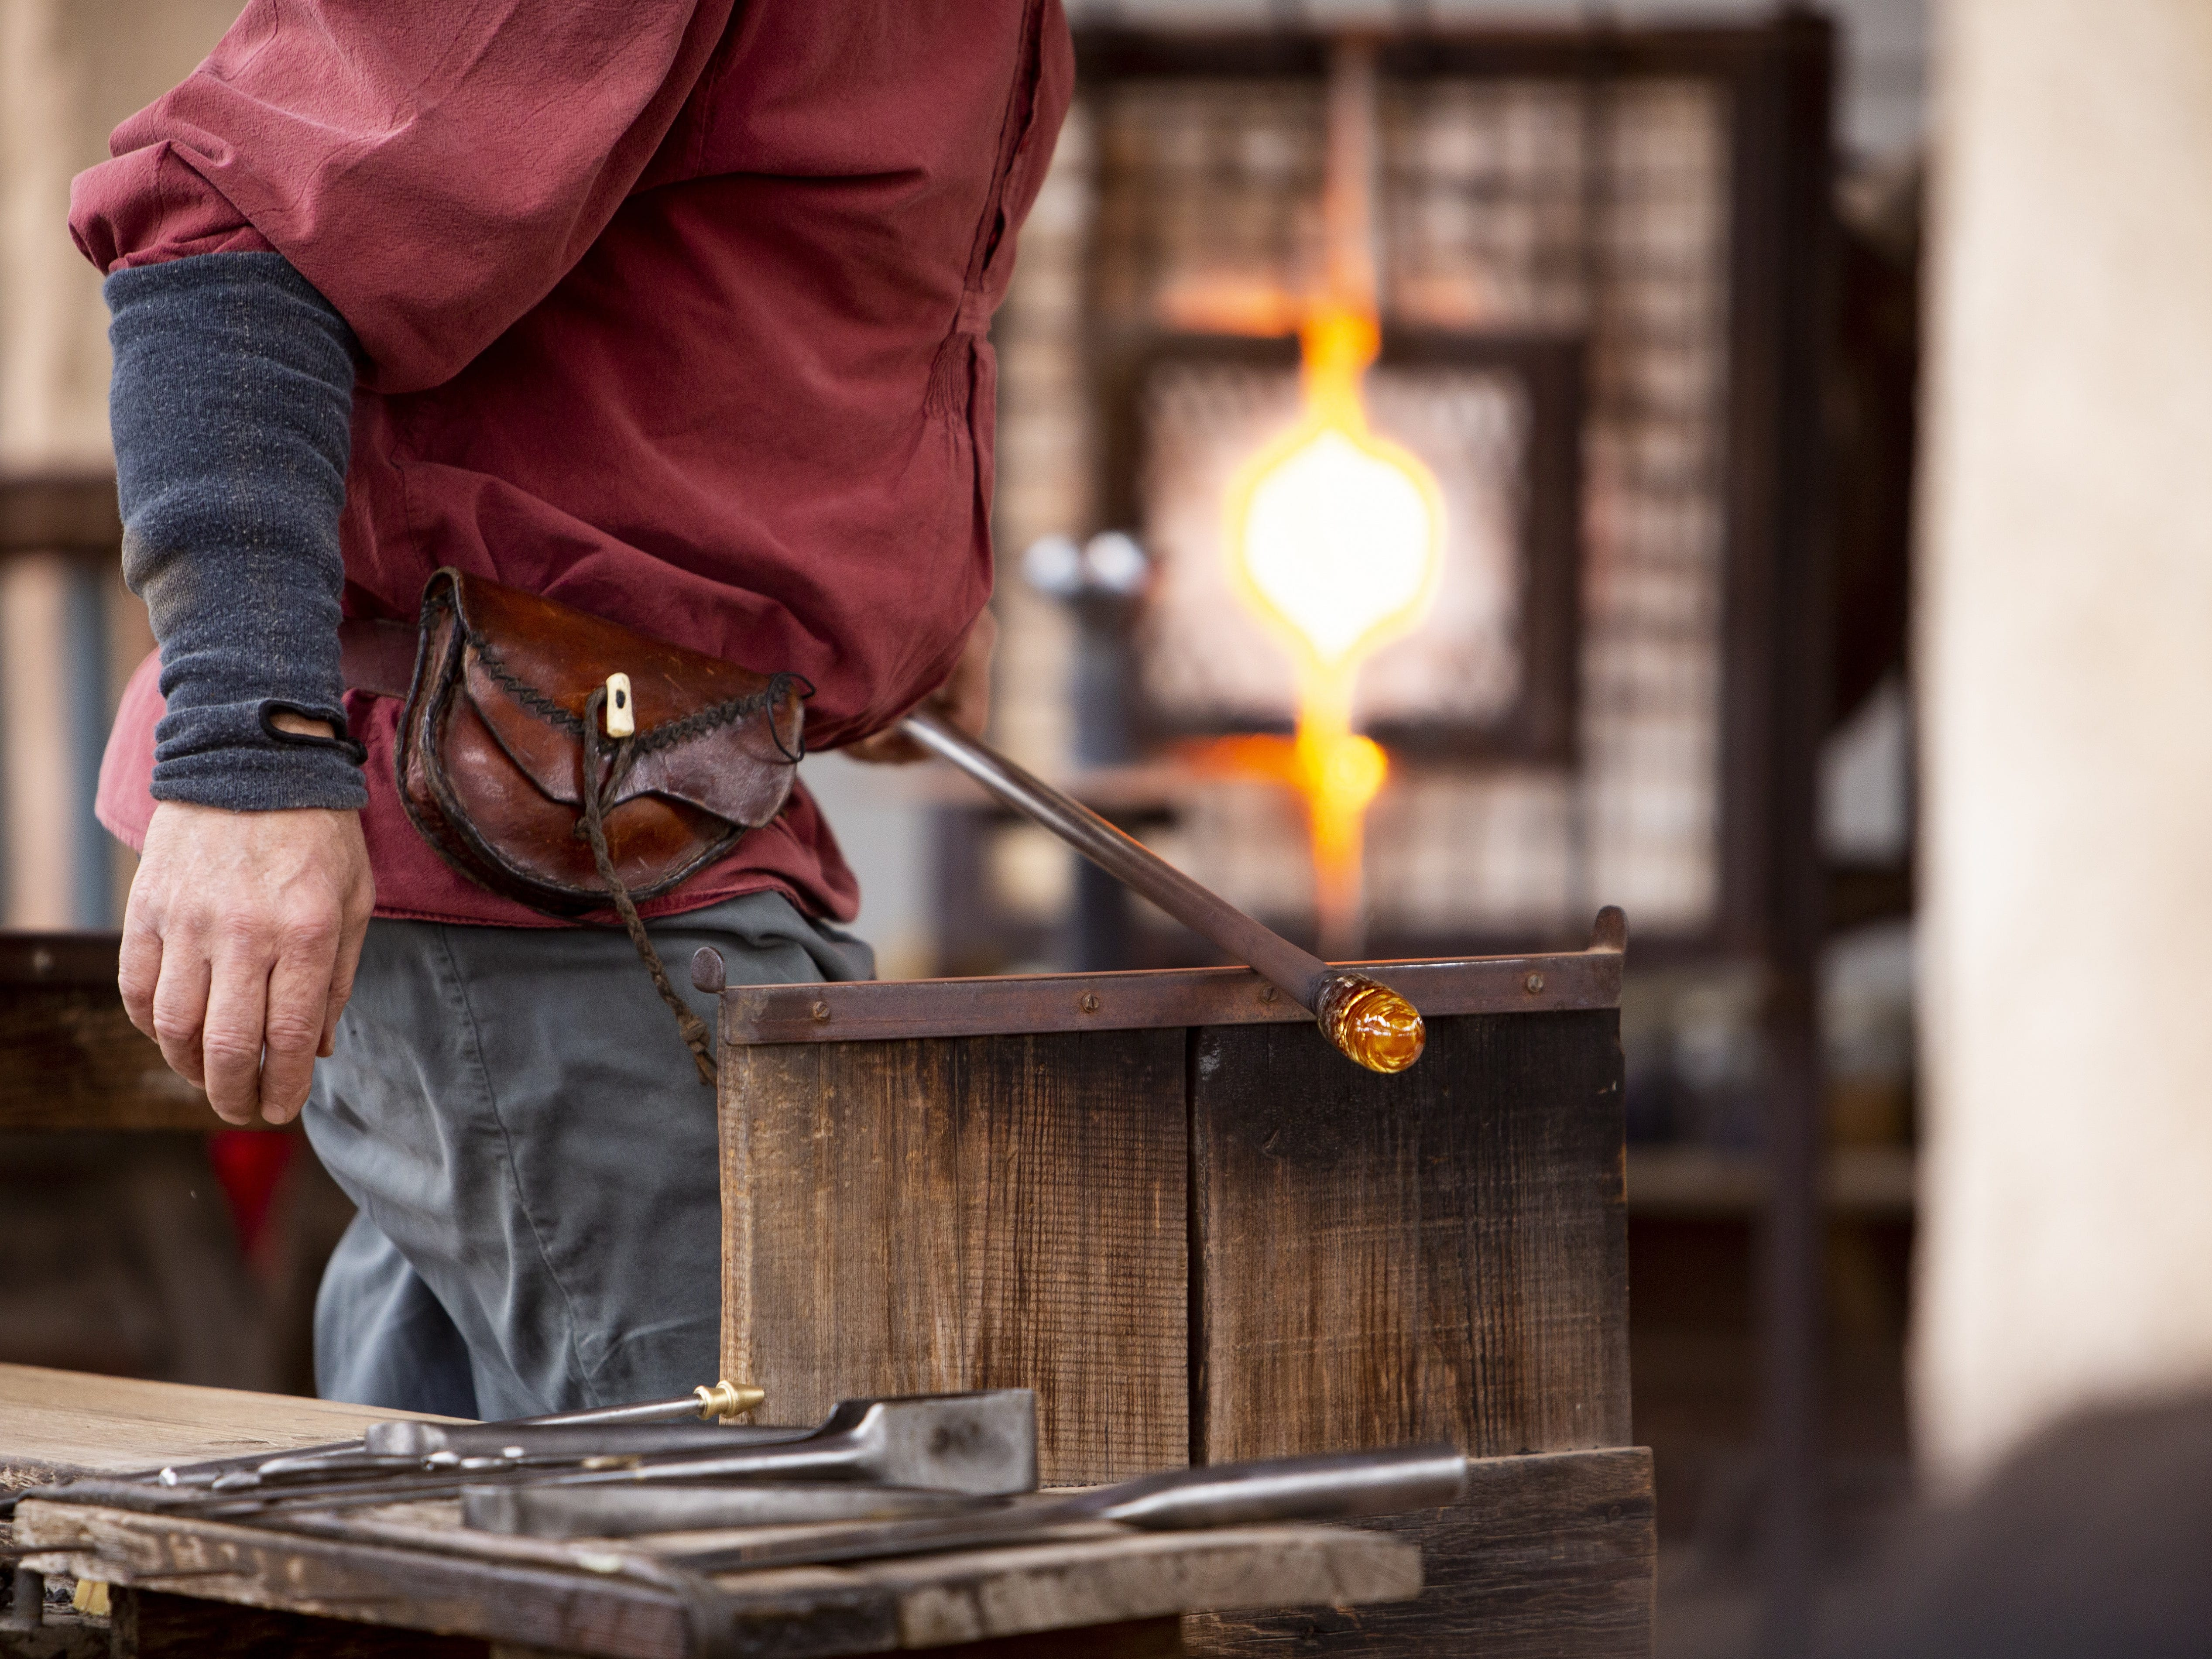 Peter Andres demonstrates how to begin a vase made of glass at the Arizona Renaissance Festival 2019 on Feb. 9, 2019 in Gold Canyon, Ariz.